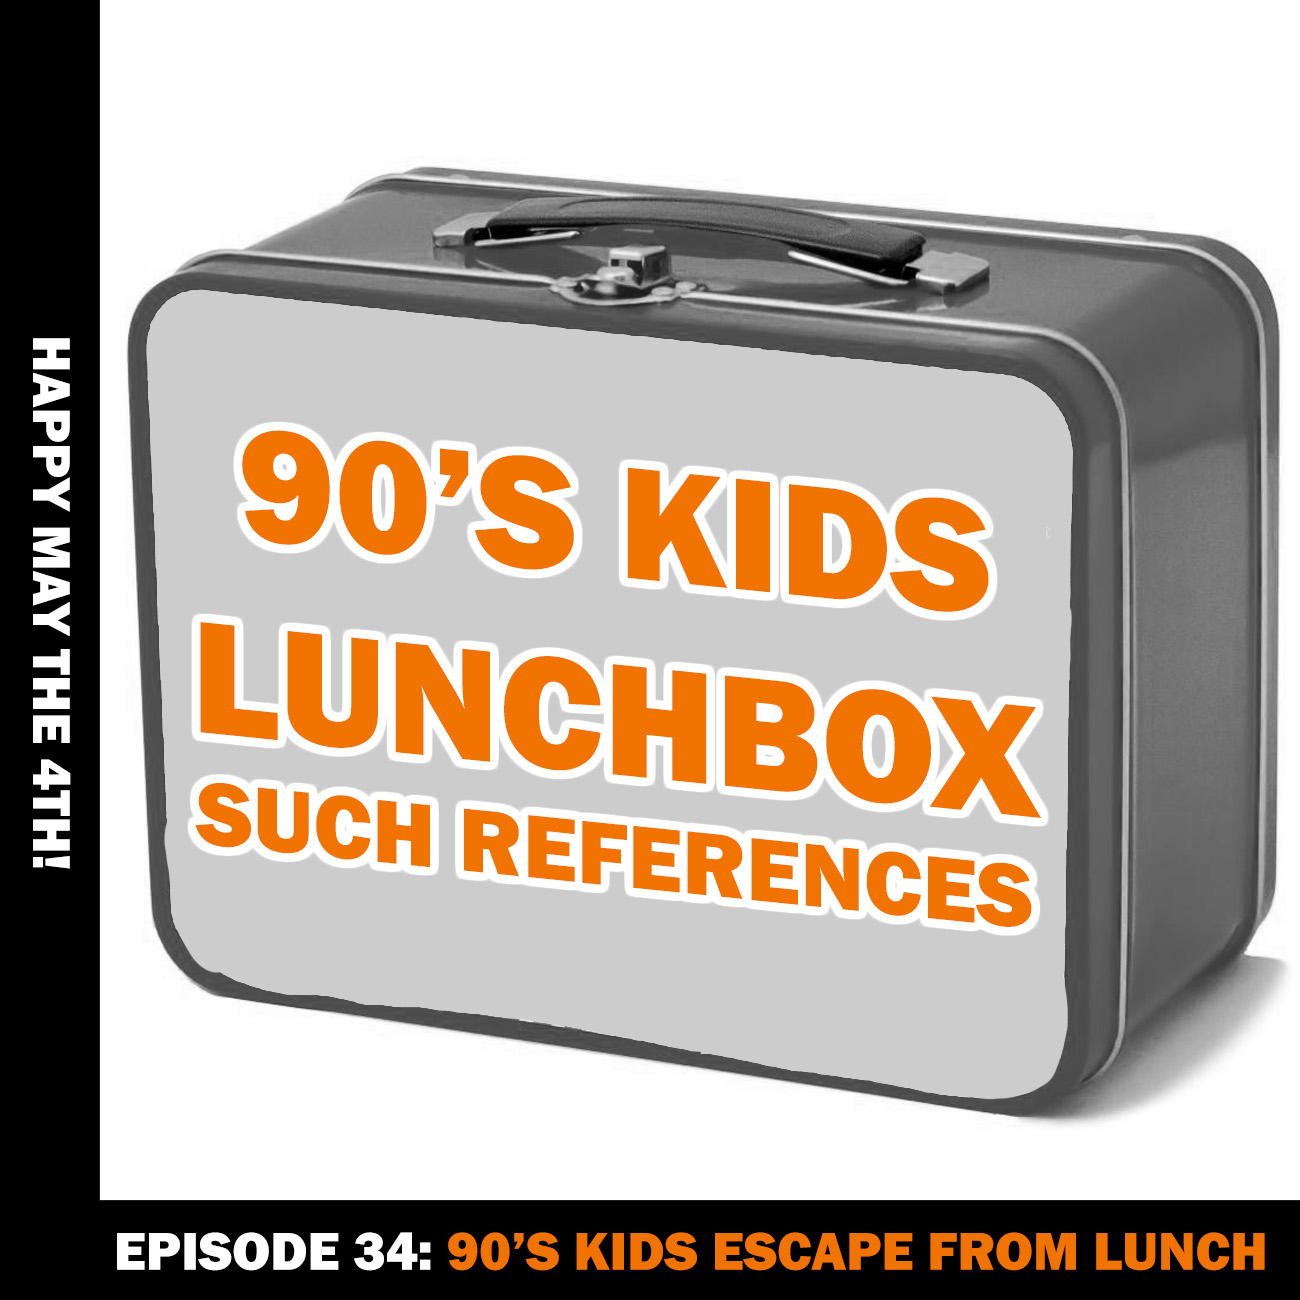 90's kids escape from a lunchbox